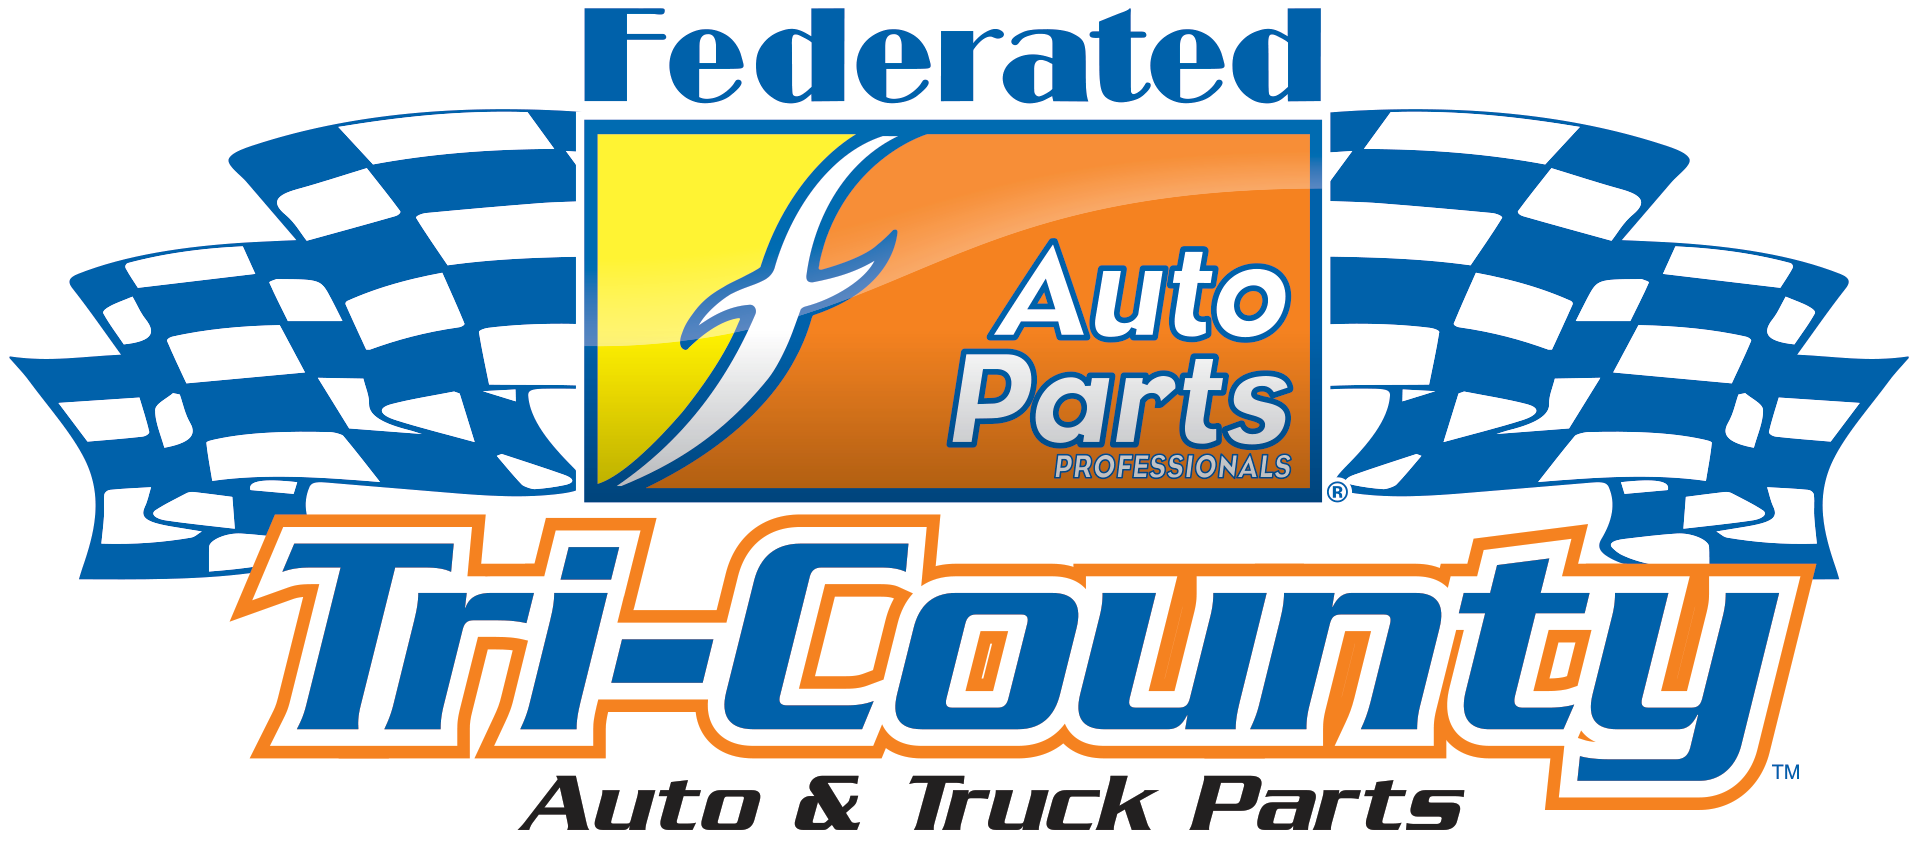 Tri County Federated Auto & Truck Parts